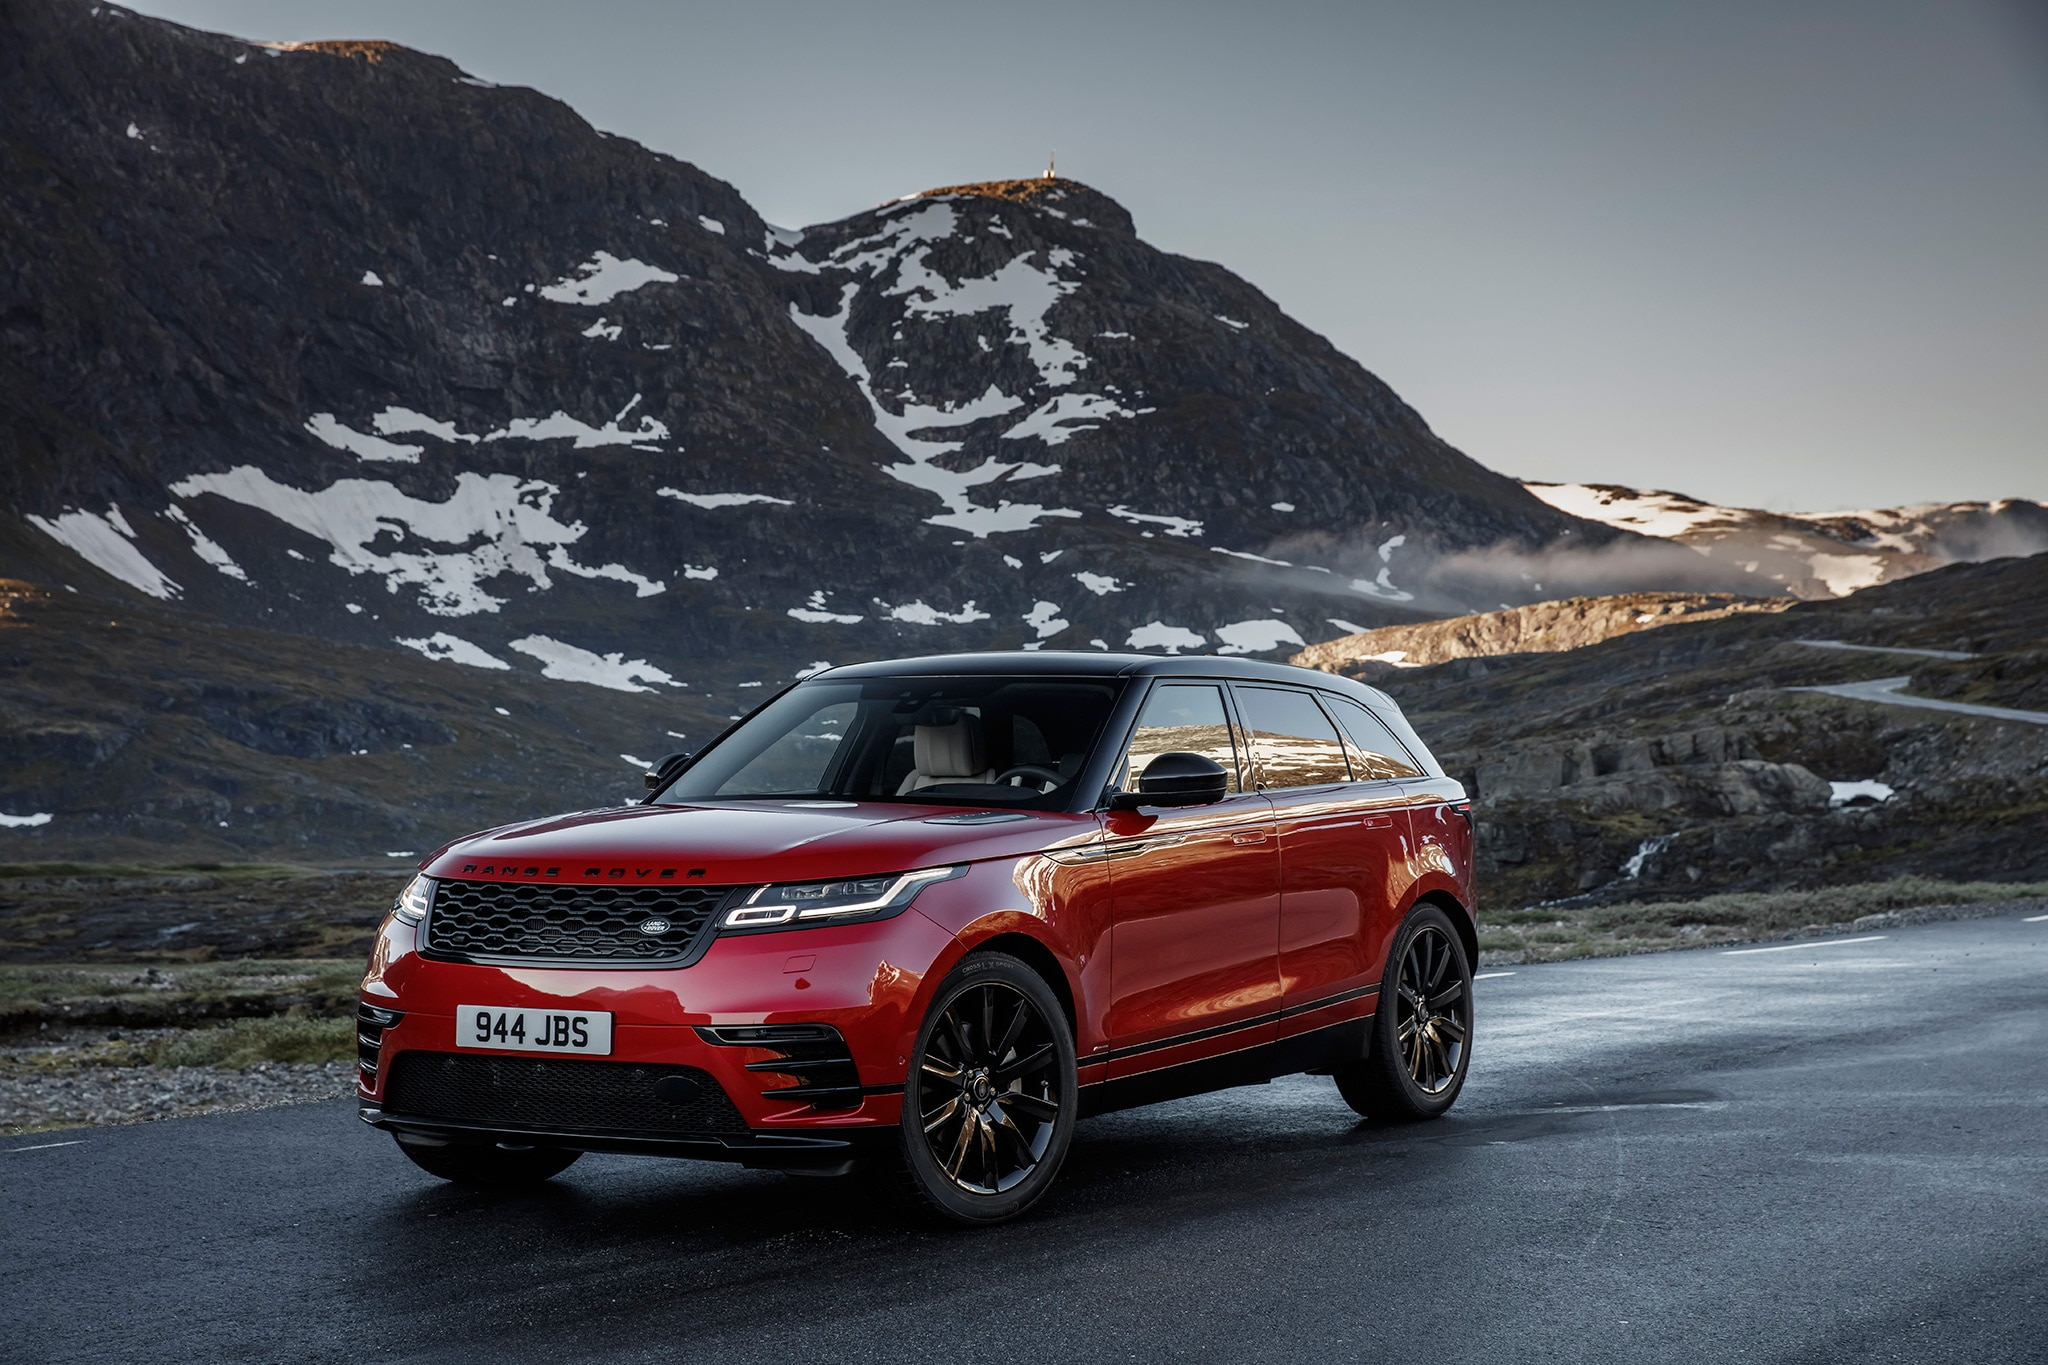 2018 land rover velar review.  2018 show more with 2018 land rover velar review